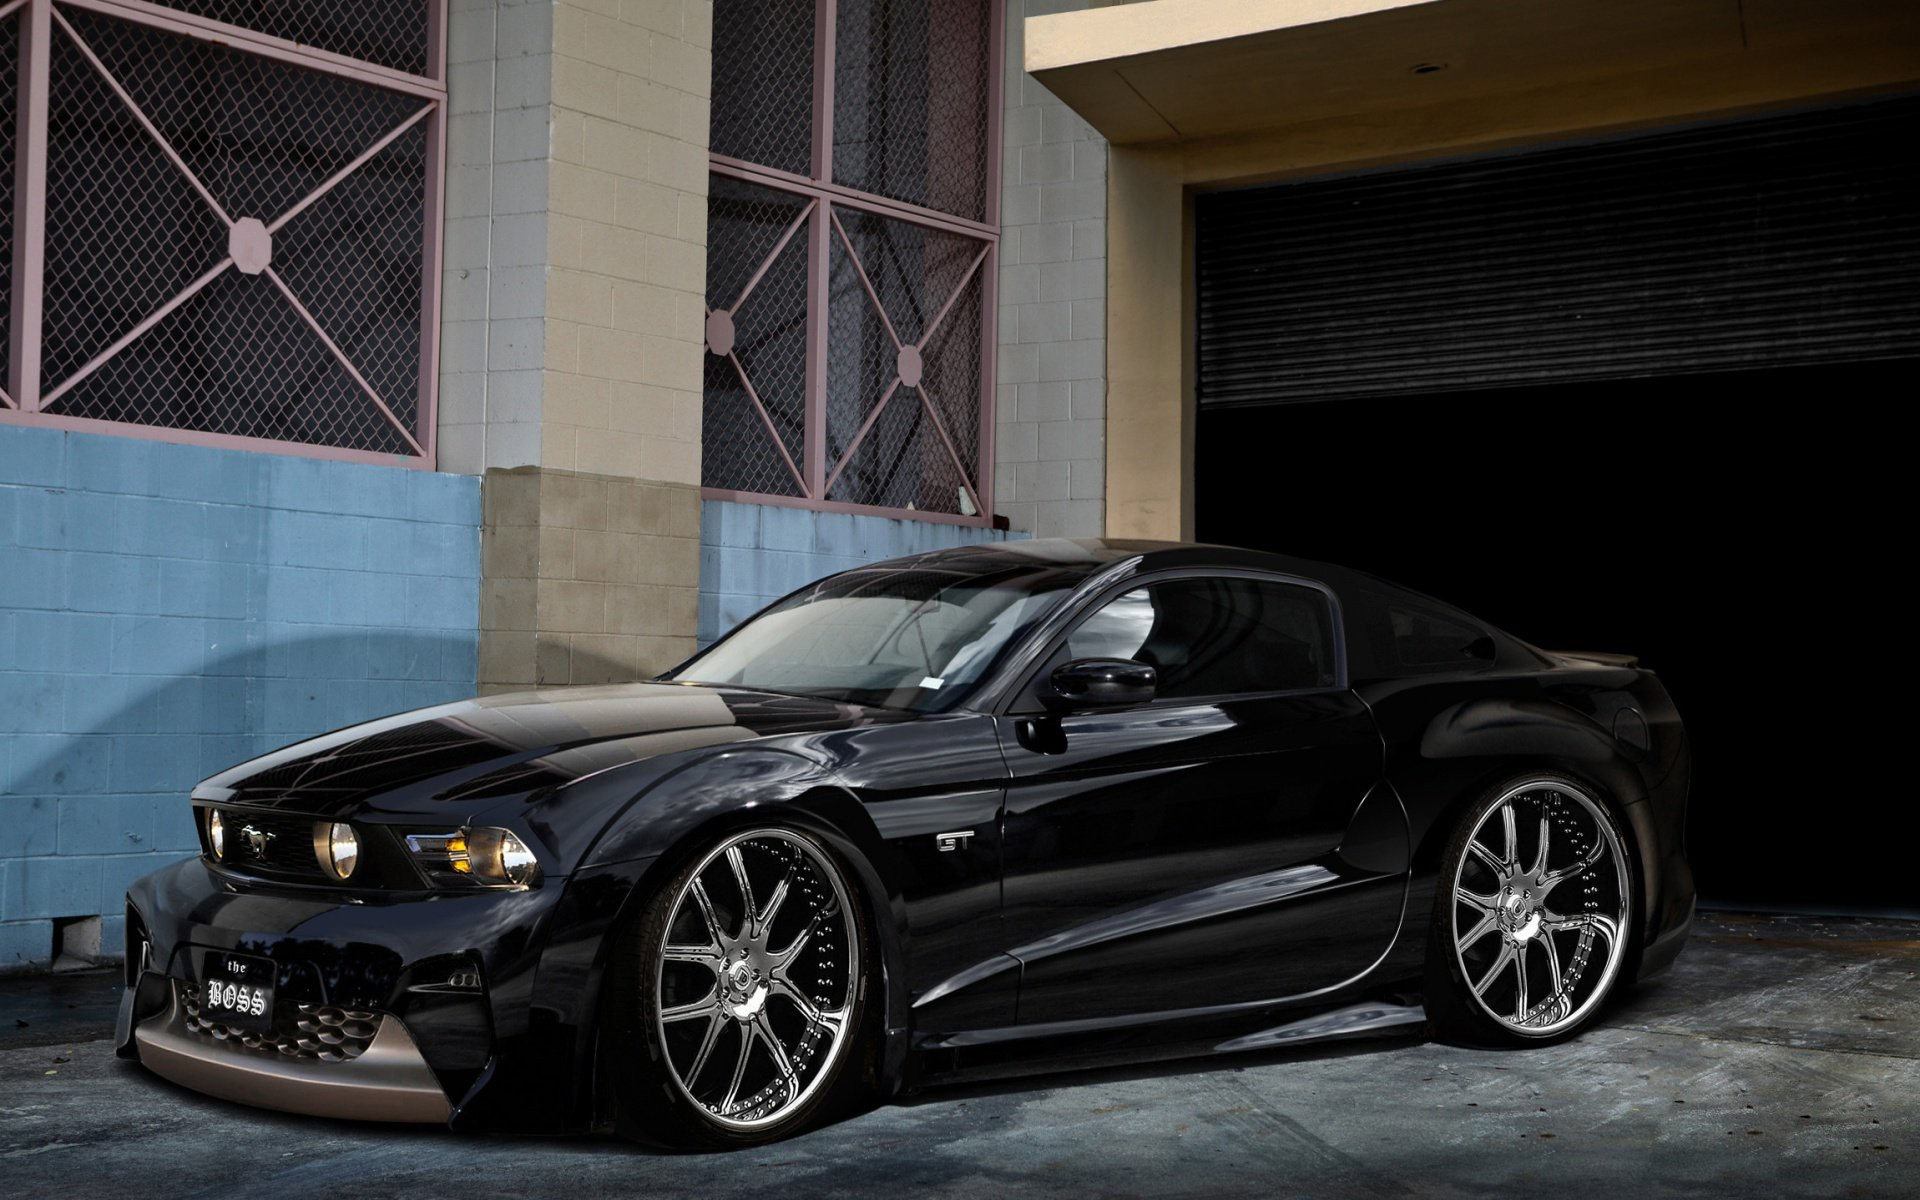 cars Supercars Ford Mustang HD Wallpaper